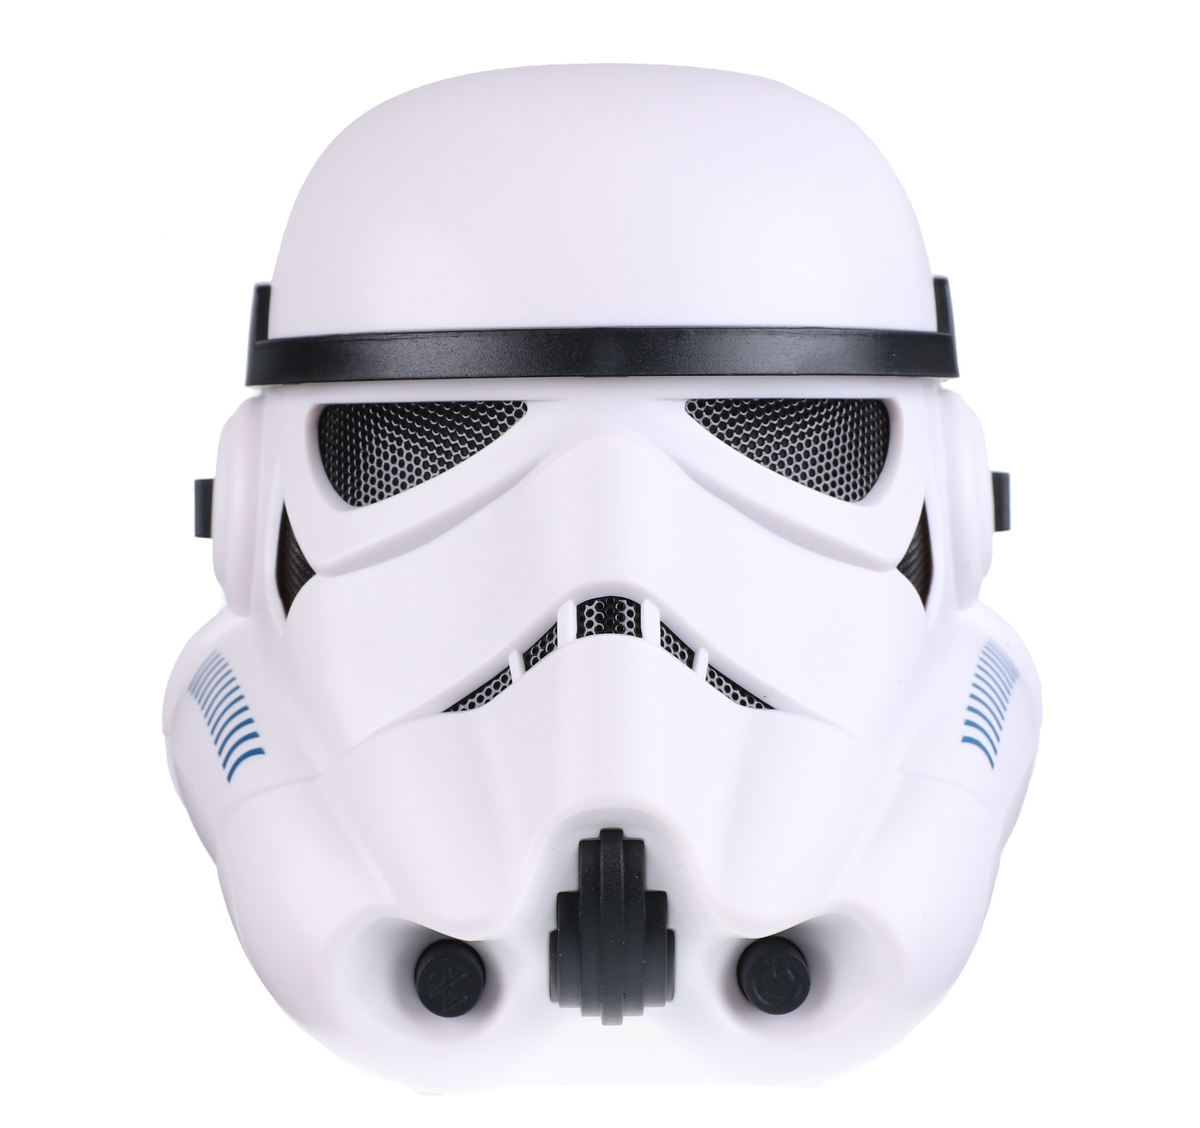 bluetooth reproduktor STAR WARS - Stormtrooper - BSS164844